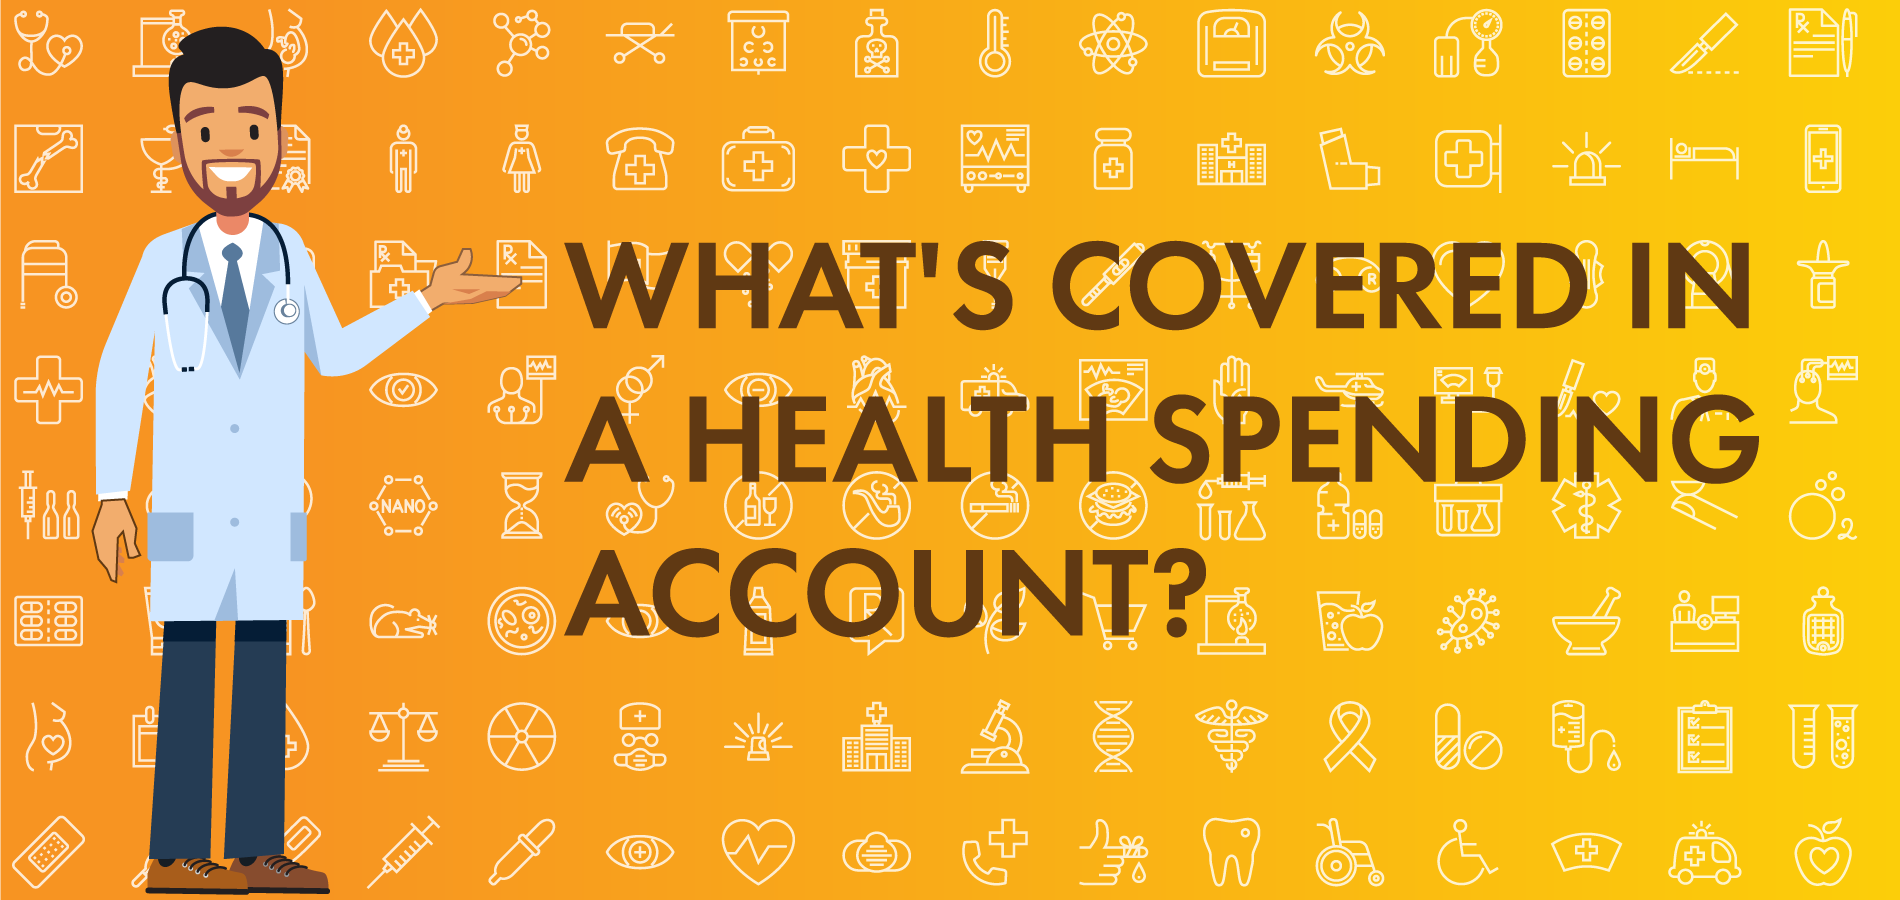 Whats covered in a Health Spending Account